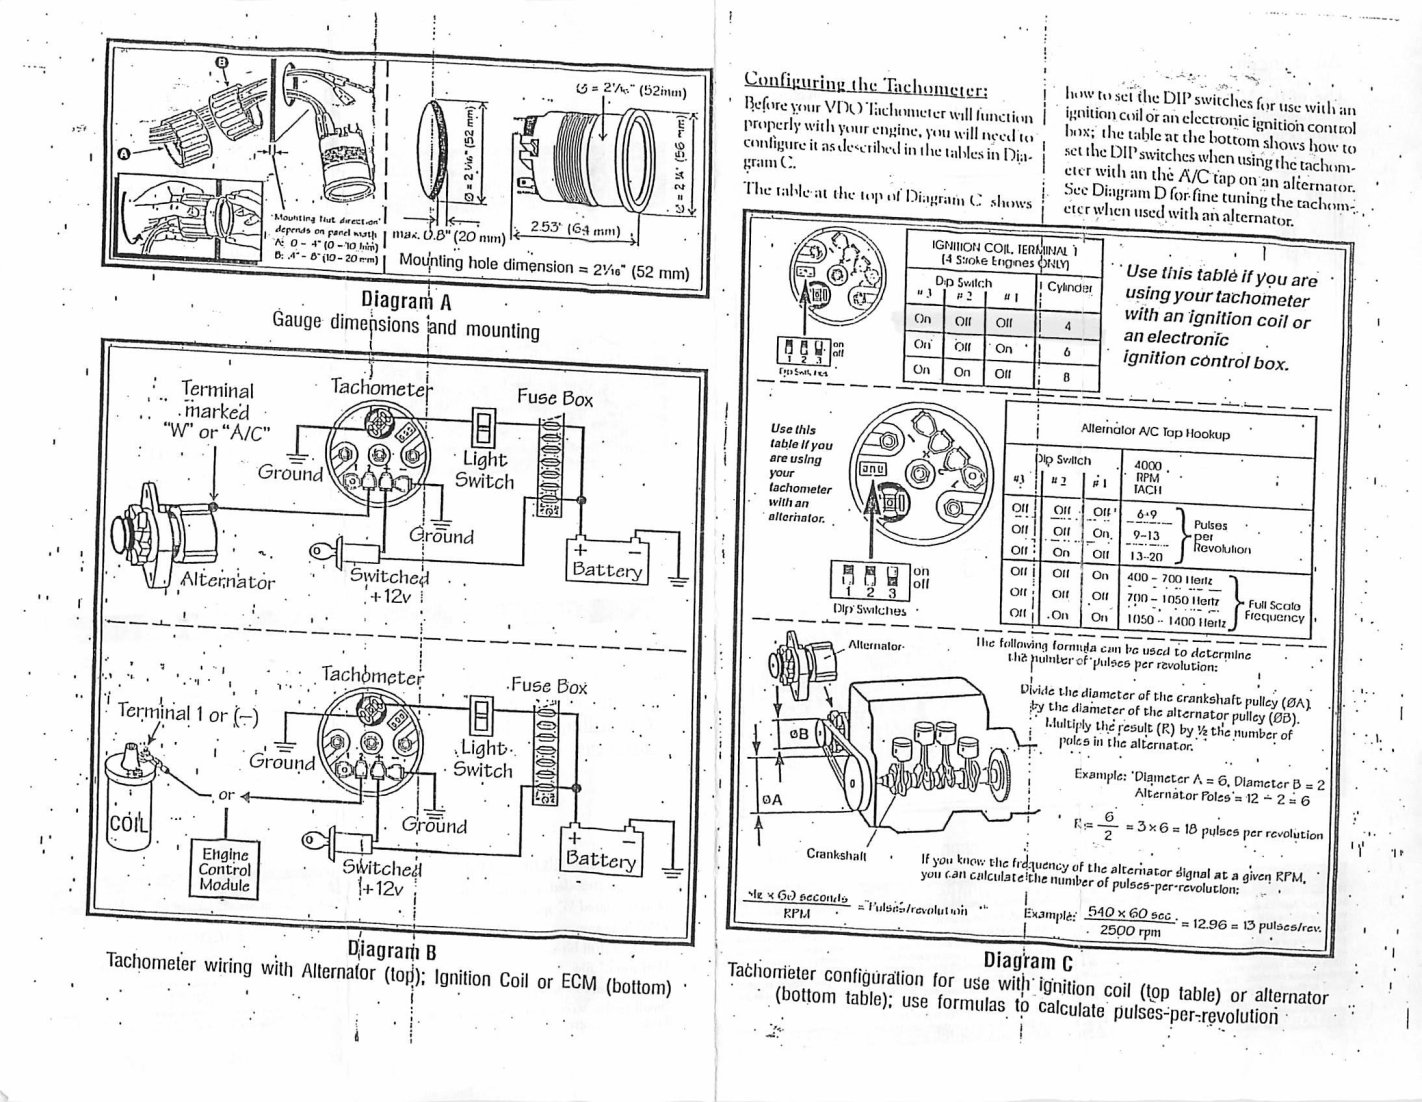 vdo marine fuel gauge wiring diagram clipsal iconic fan controller kenworth tachometer cadillac